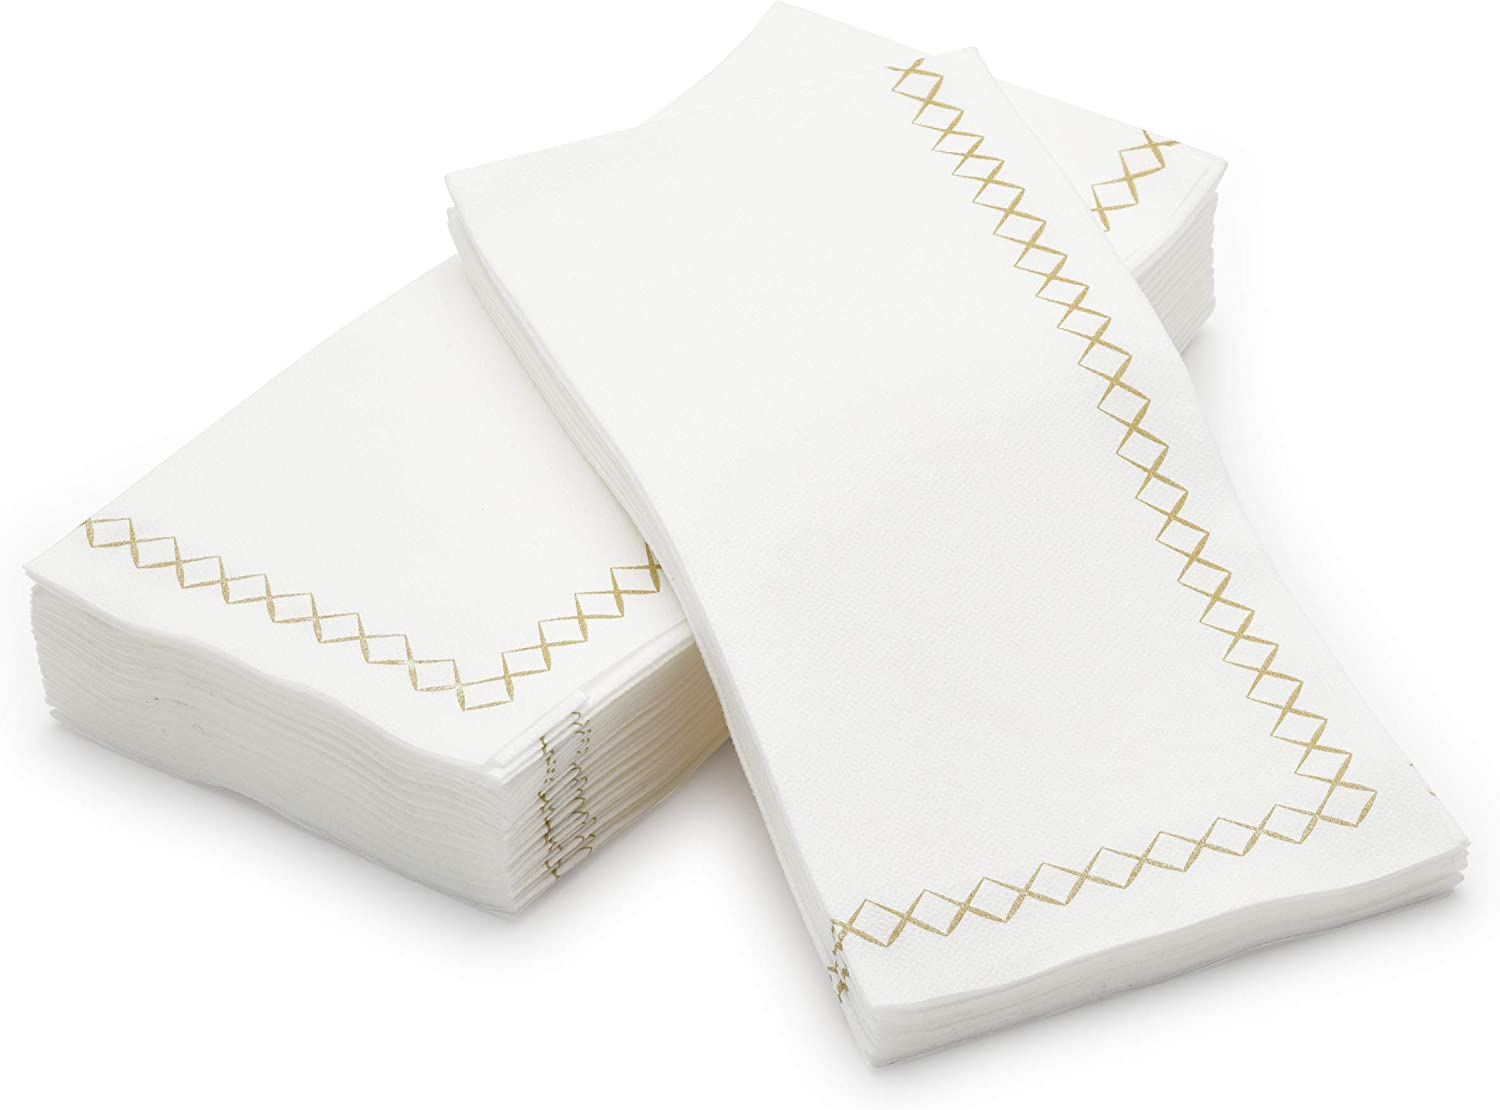 Gold Napkins Paper Hand Towels For Guest Bathroom 100 Pack Linen-Feel Dinner Party Napkins Decorative By Madee Disposable Fancy Napkins Great for Weddings Events /& Dinner Party